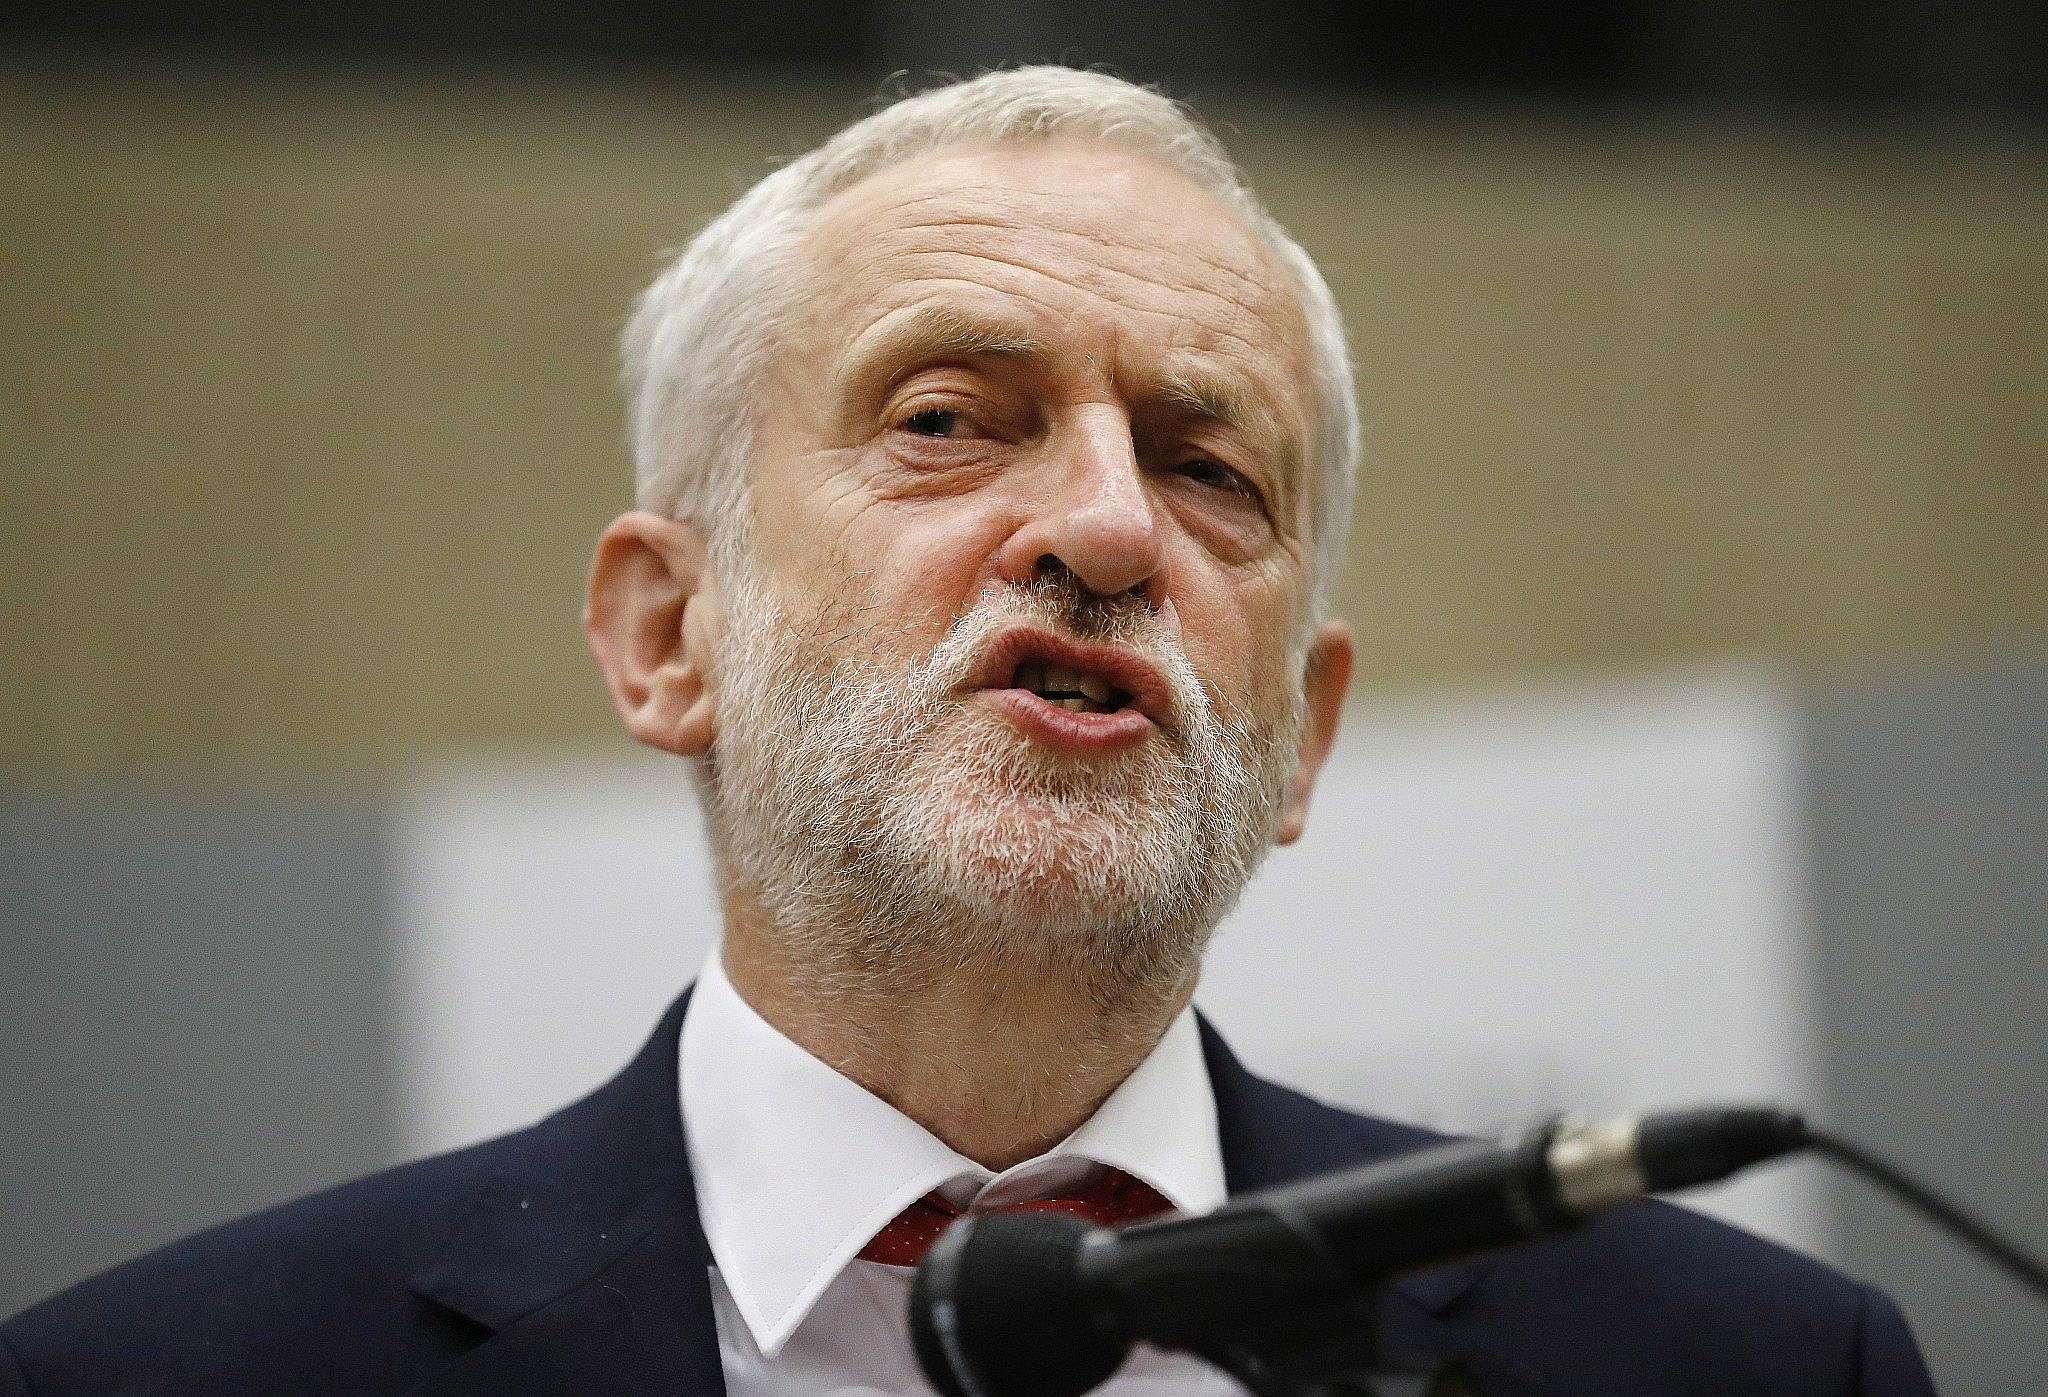 Labour anti-Semitism row: Corbyn faces criticism over Jewdas event